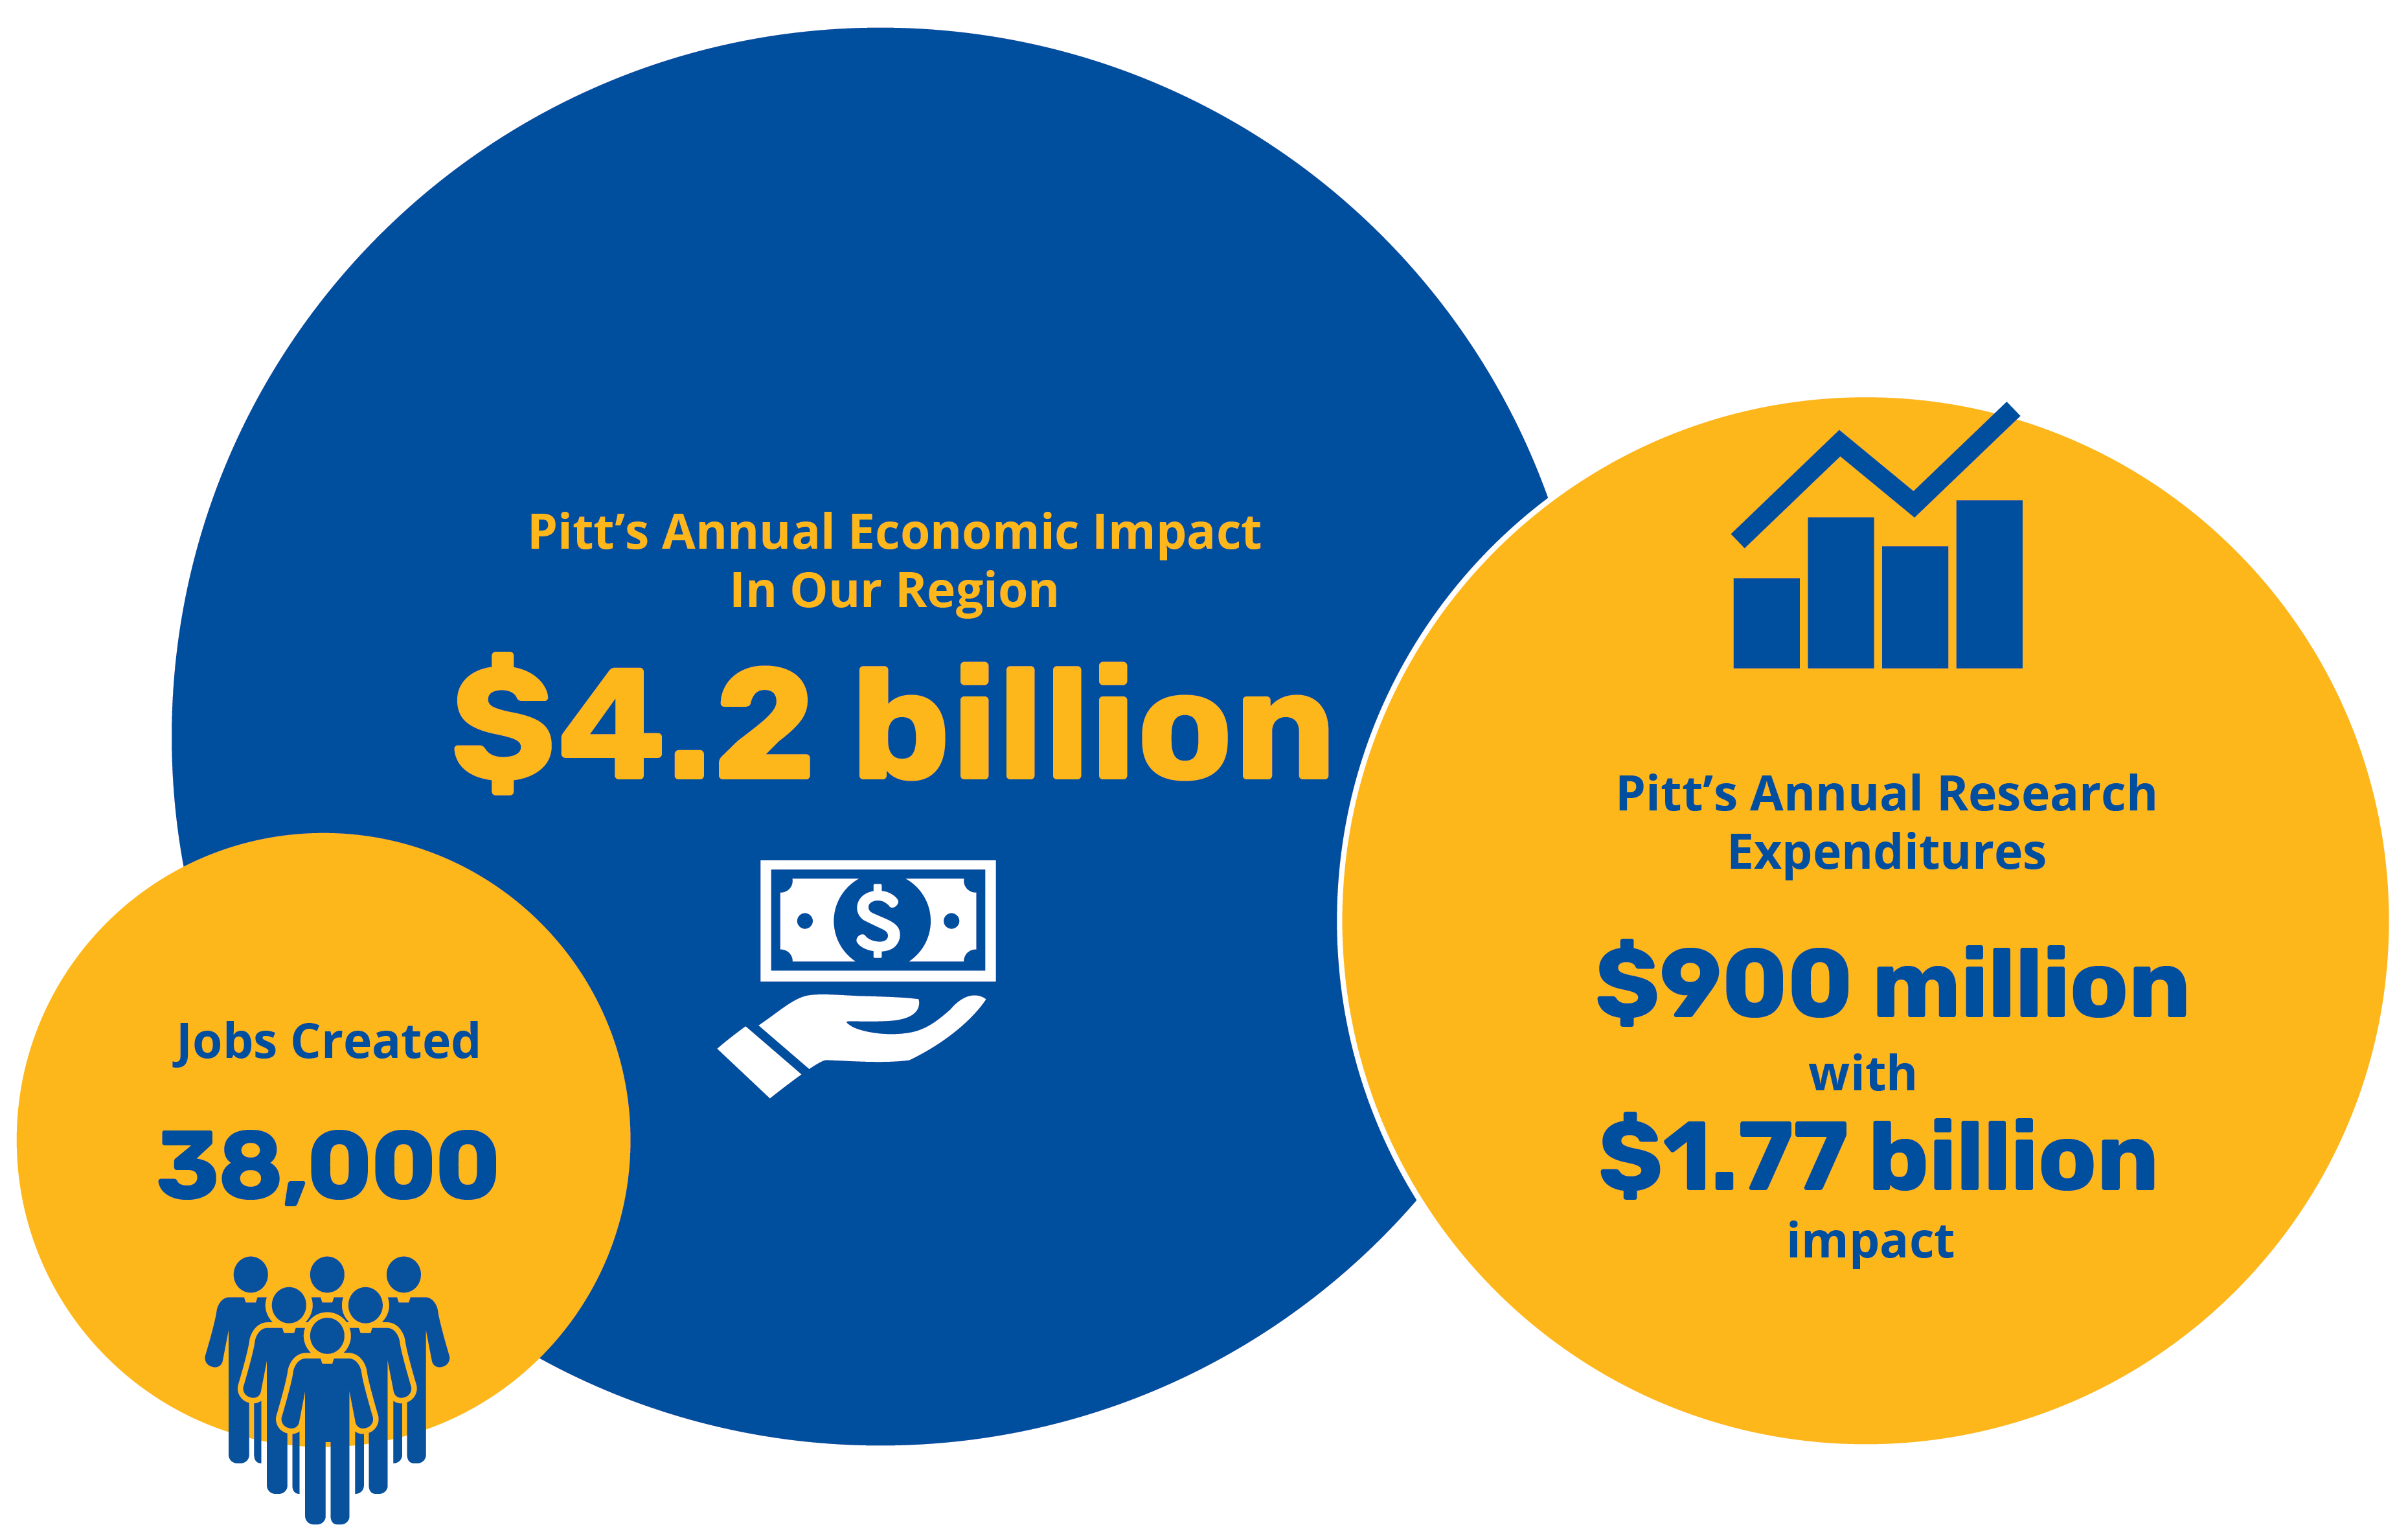 Pitt's annual economic impact on the region is $4.2 billion including Pitt's annual research expenditures of $900 million which have a $1.77 billion impact. Pitt's impact creates 38,000 jobs.